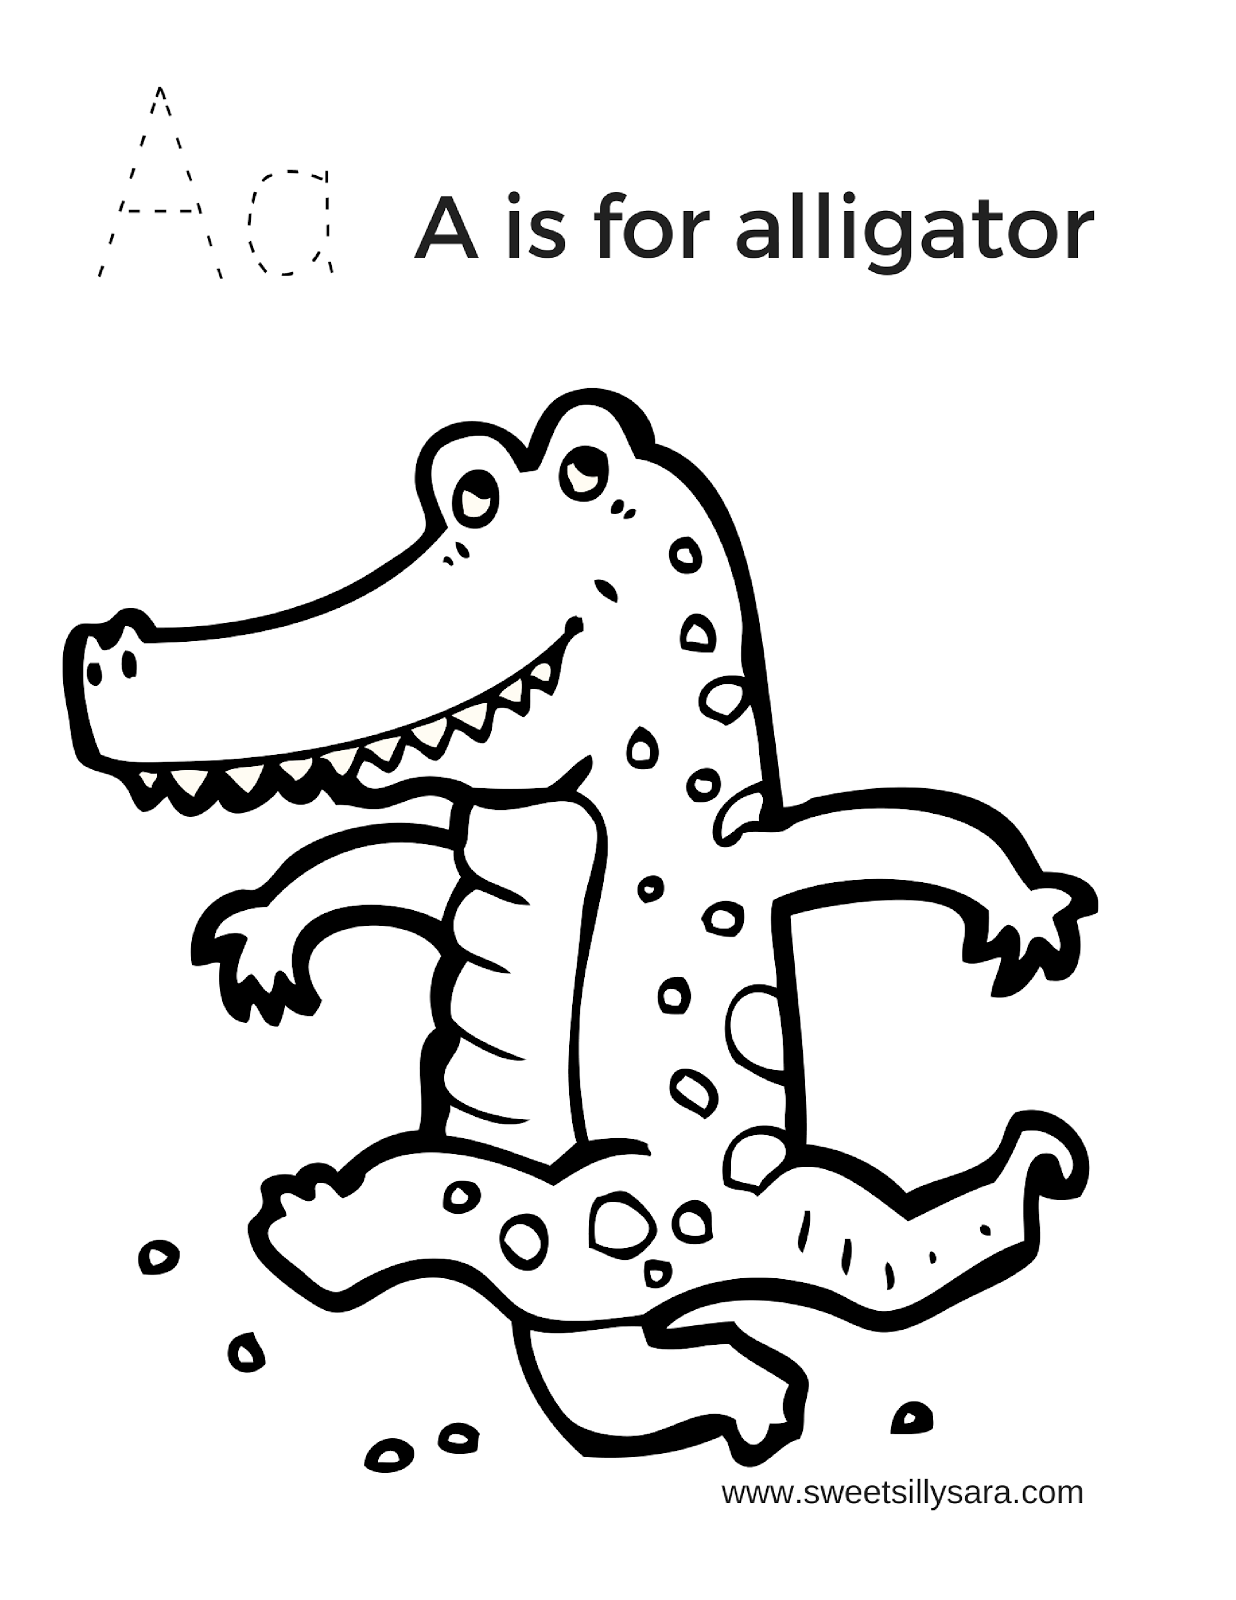 Crafting Reality with Sara: A is for Alligator Coloring Page